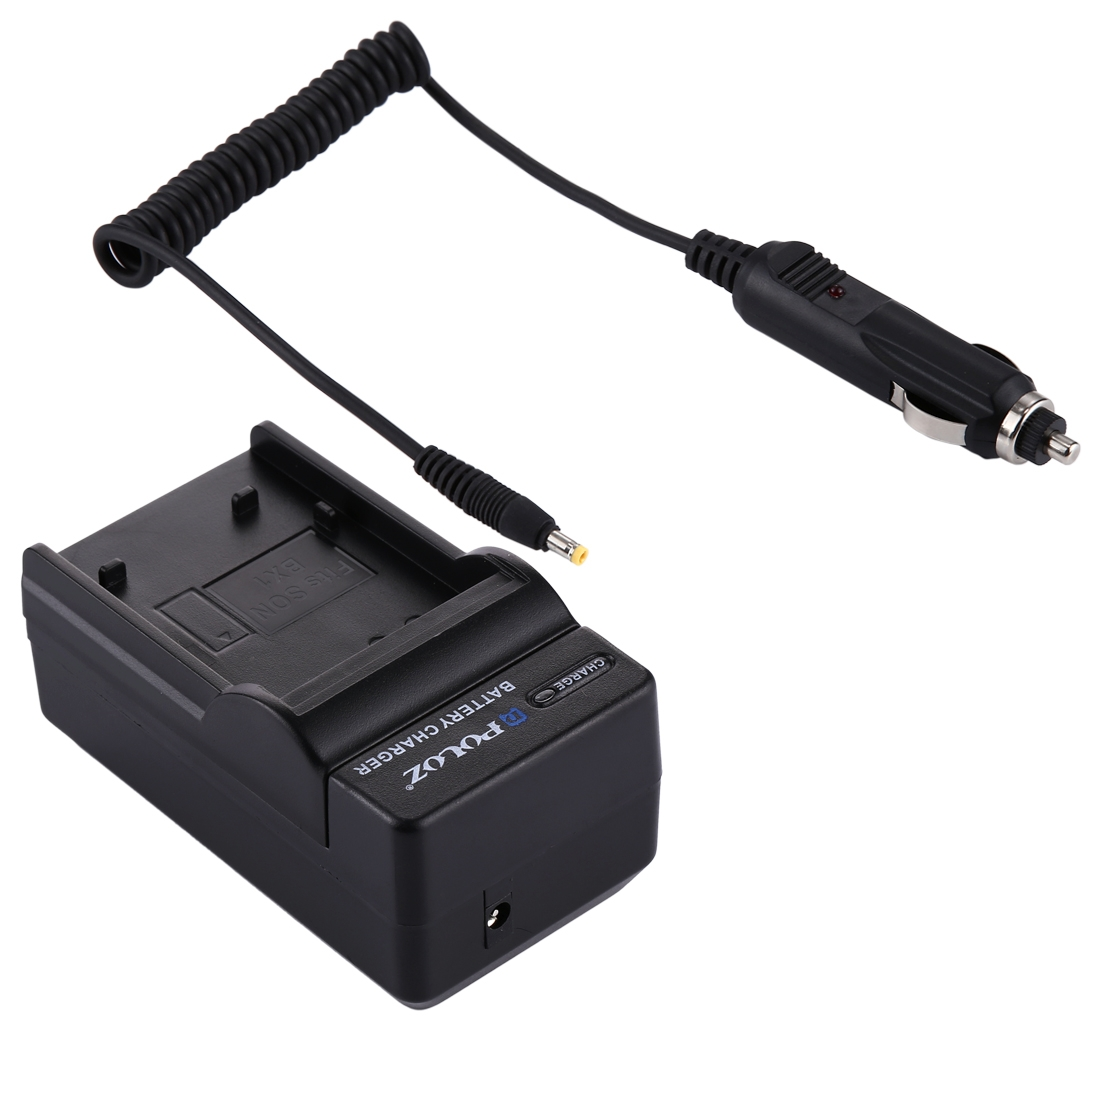 PULUZ 2 in 1 Digital Camera Battery Car Charger for Canon NB-6L Battery